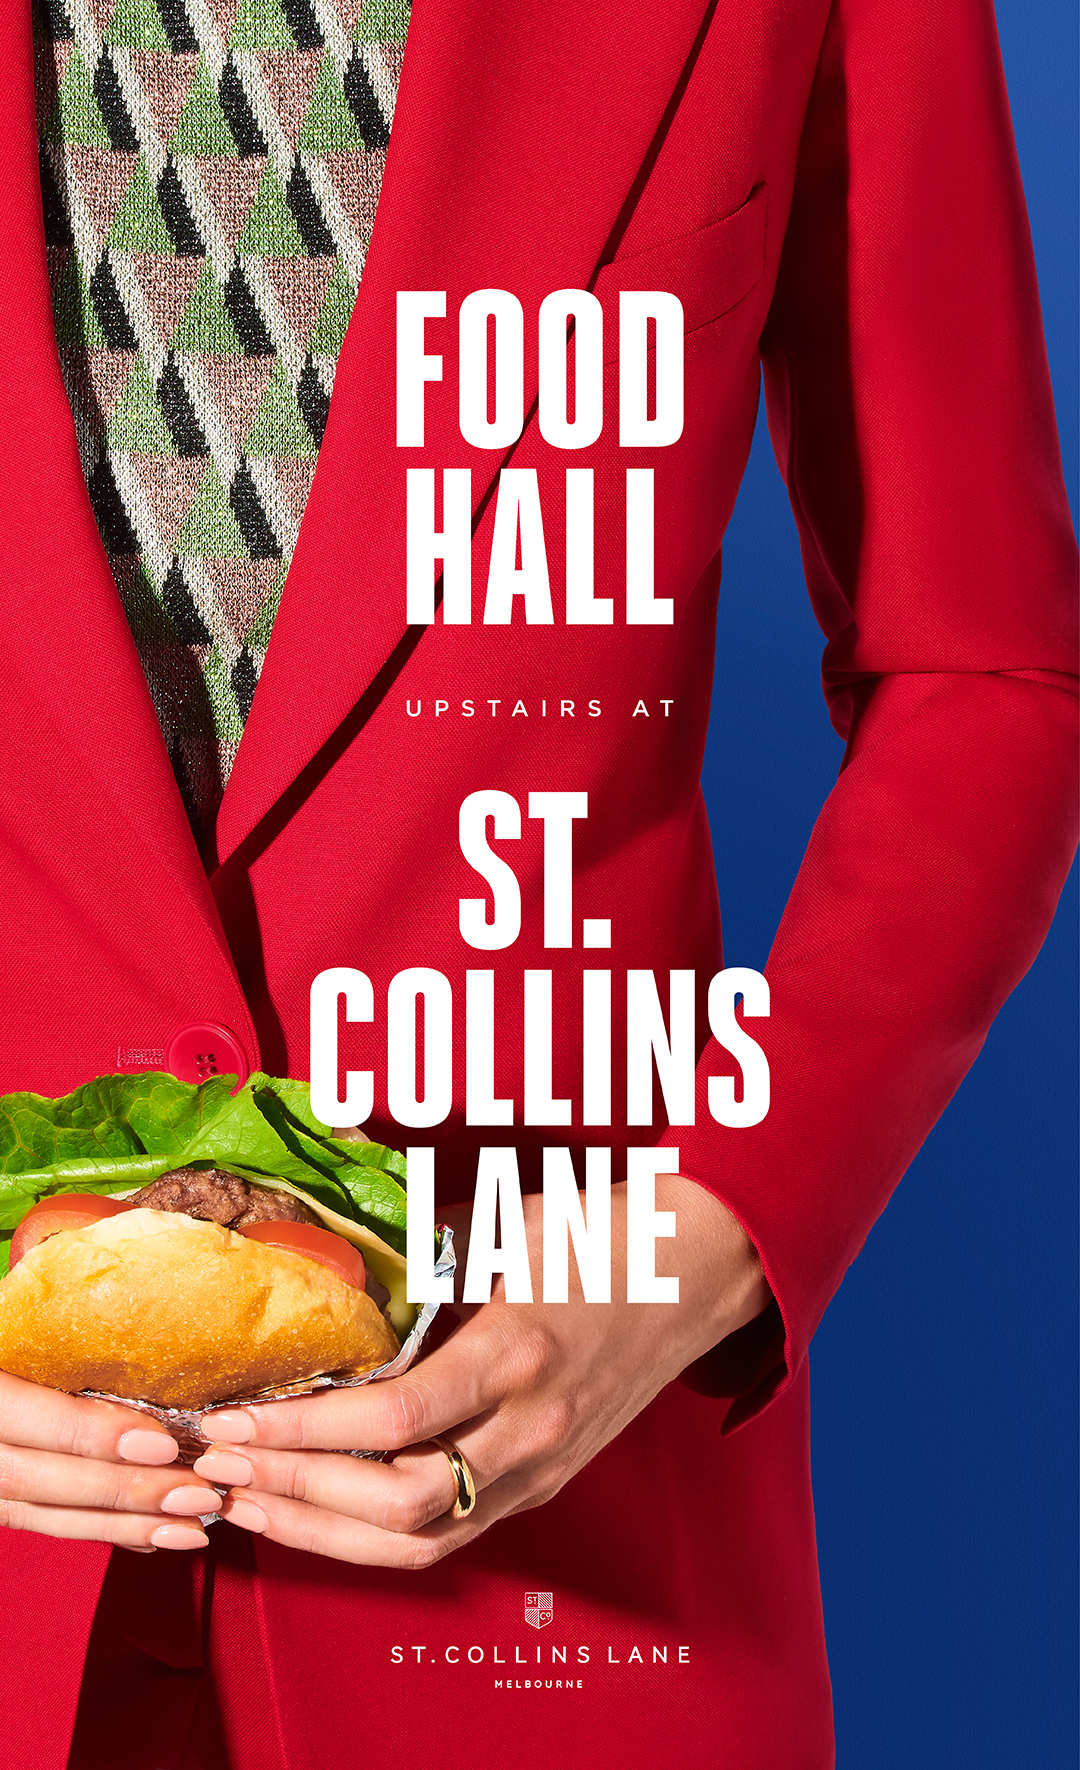 SCO3466 - St Collins Lane Food Hall - Digital Screens - 1770x1080 - 01 - FA.jpg